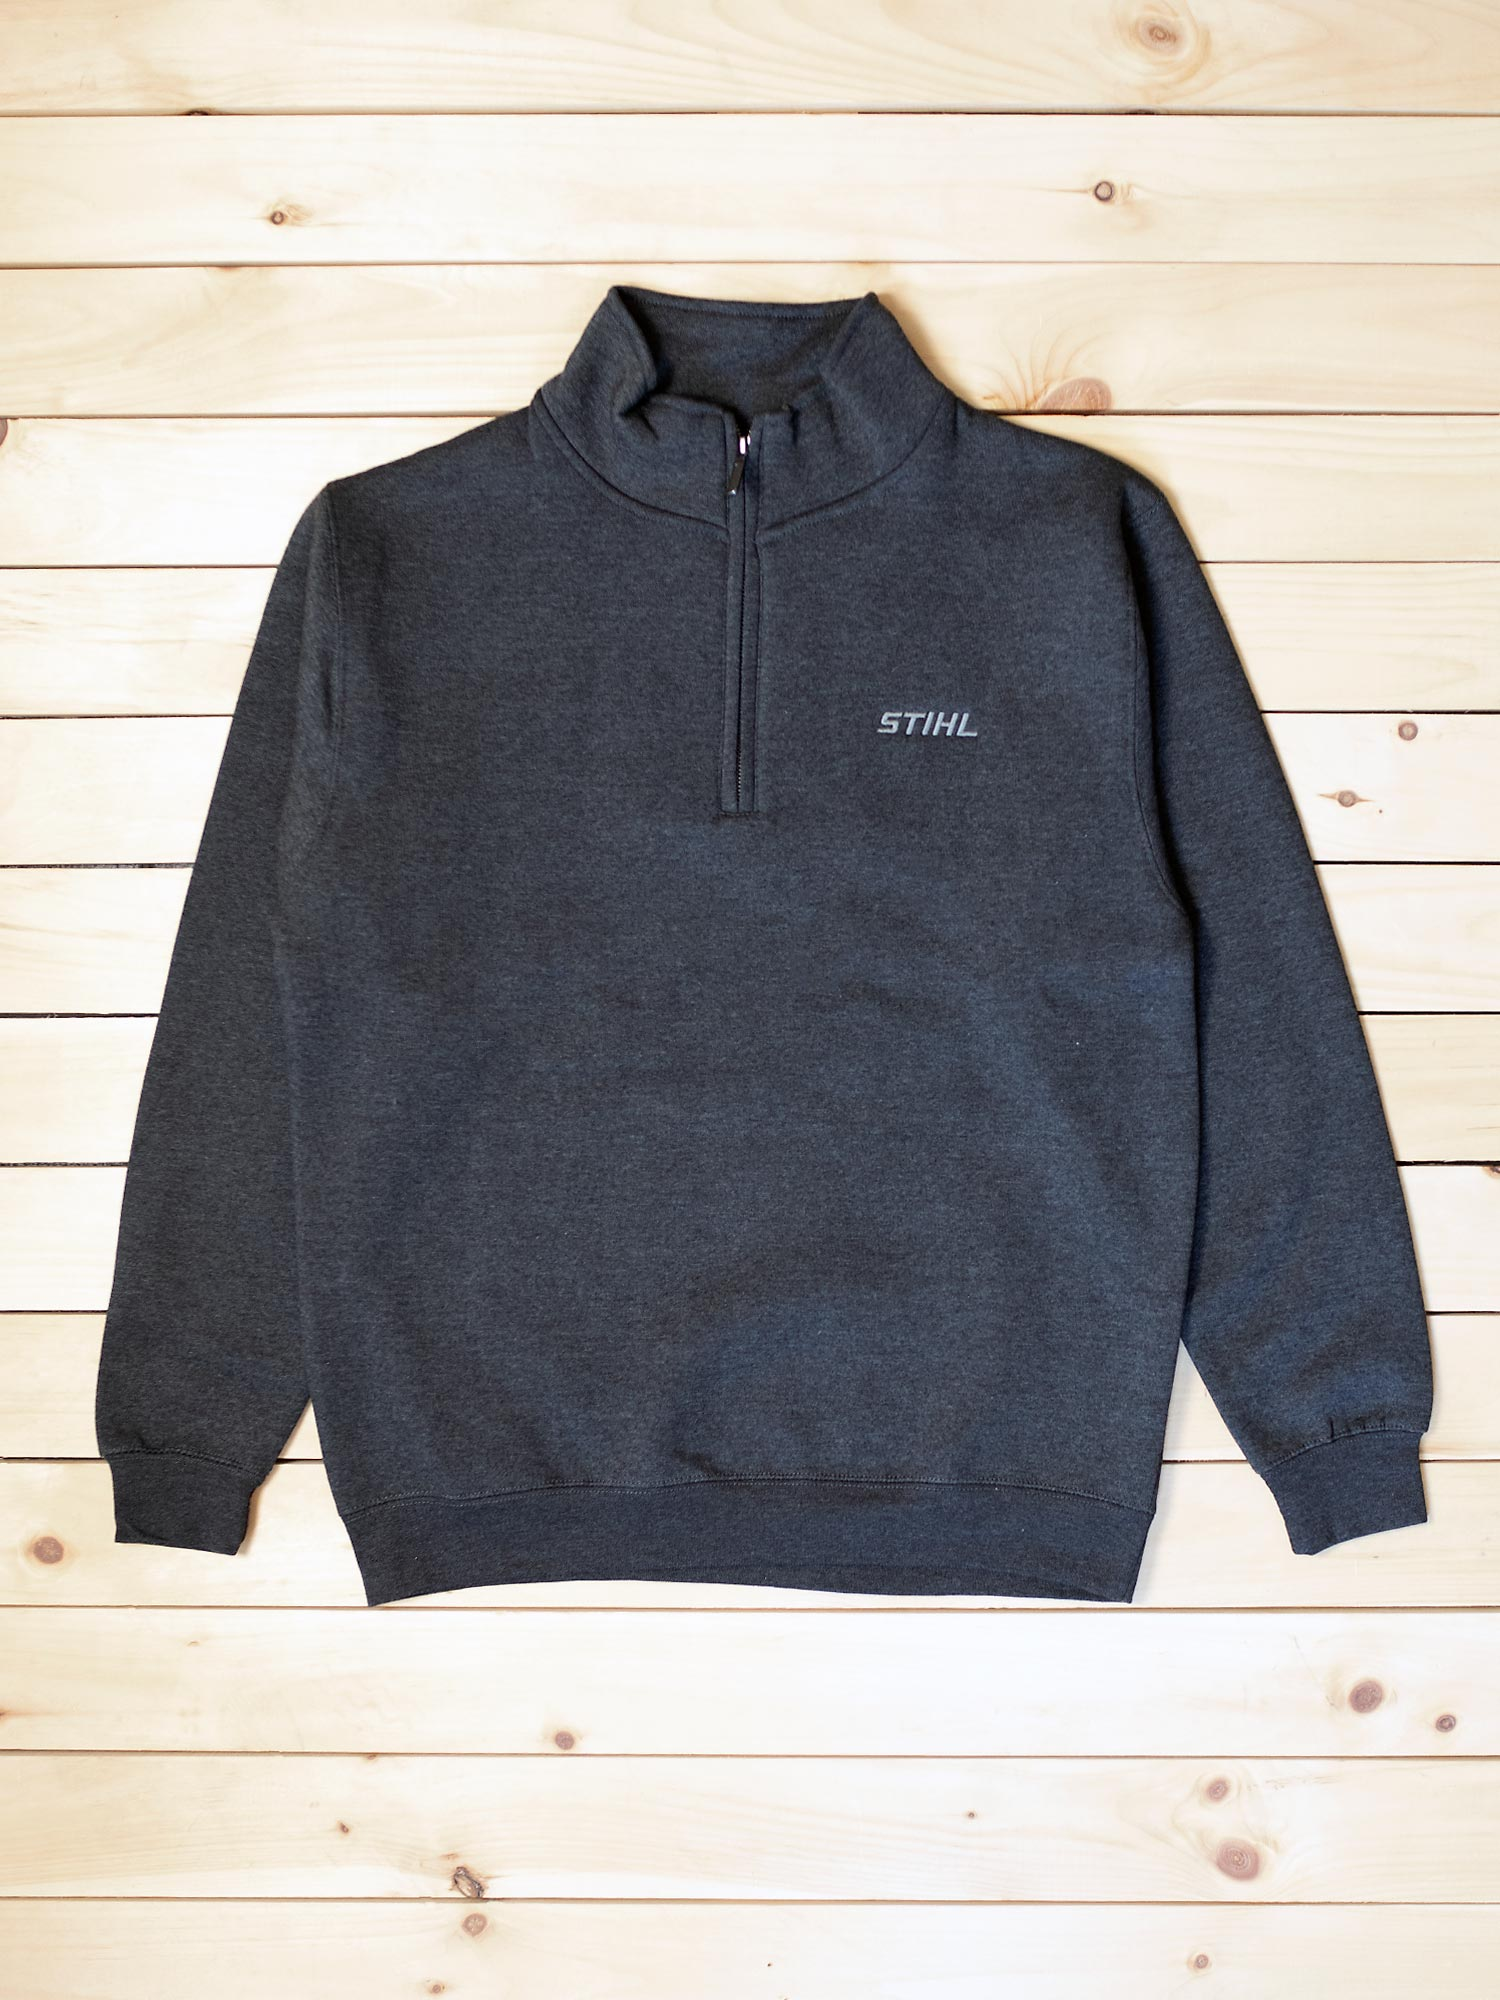 STIHL Heavyweight Quarter Zip